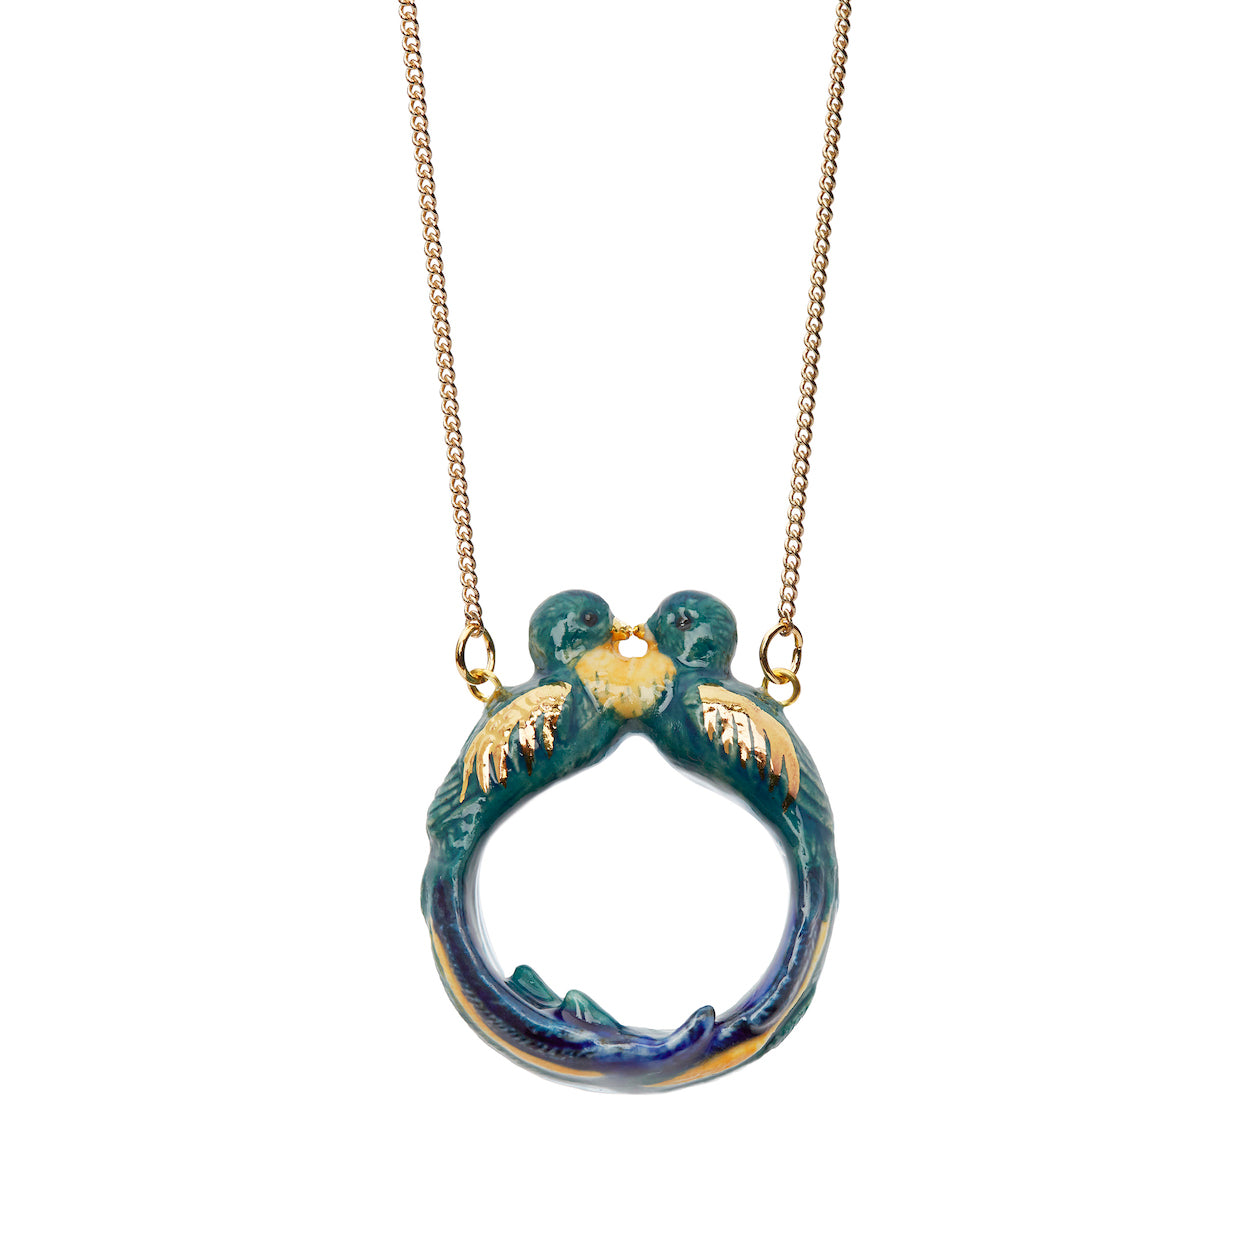 Teal Kissing Loop Tail Birds Necklace